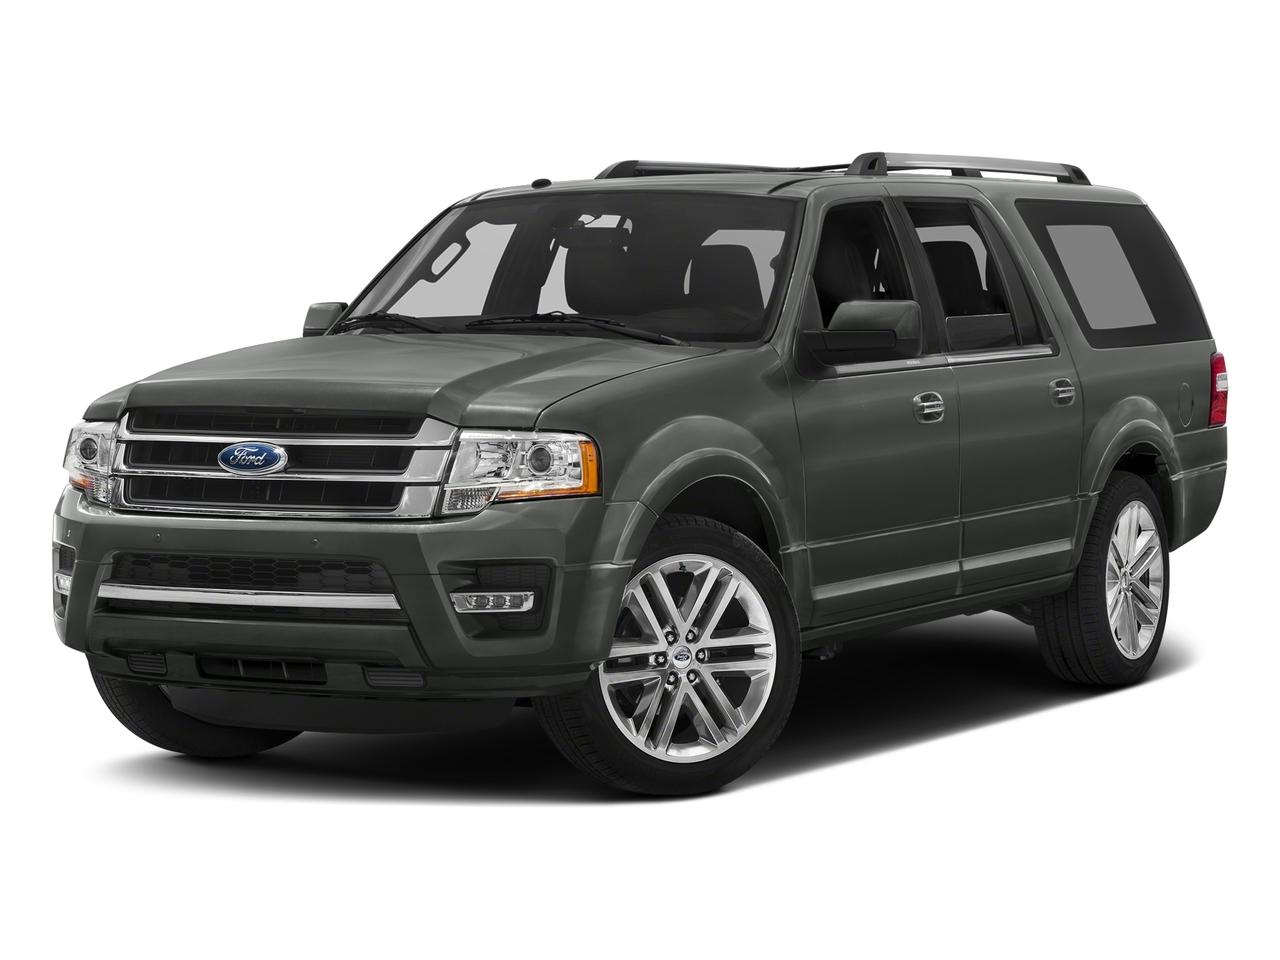 2016 Ford Expedition EL Vehicle Photo in Colorado Springs, CO 80920